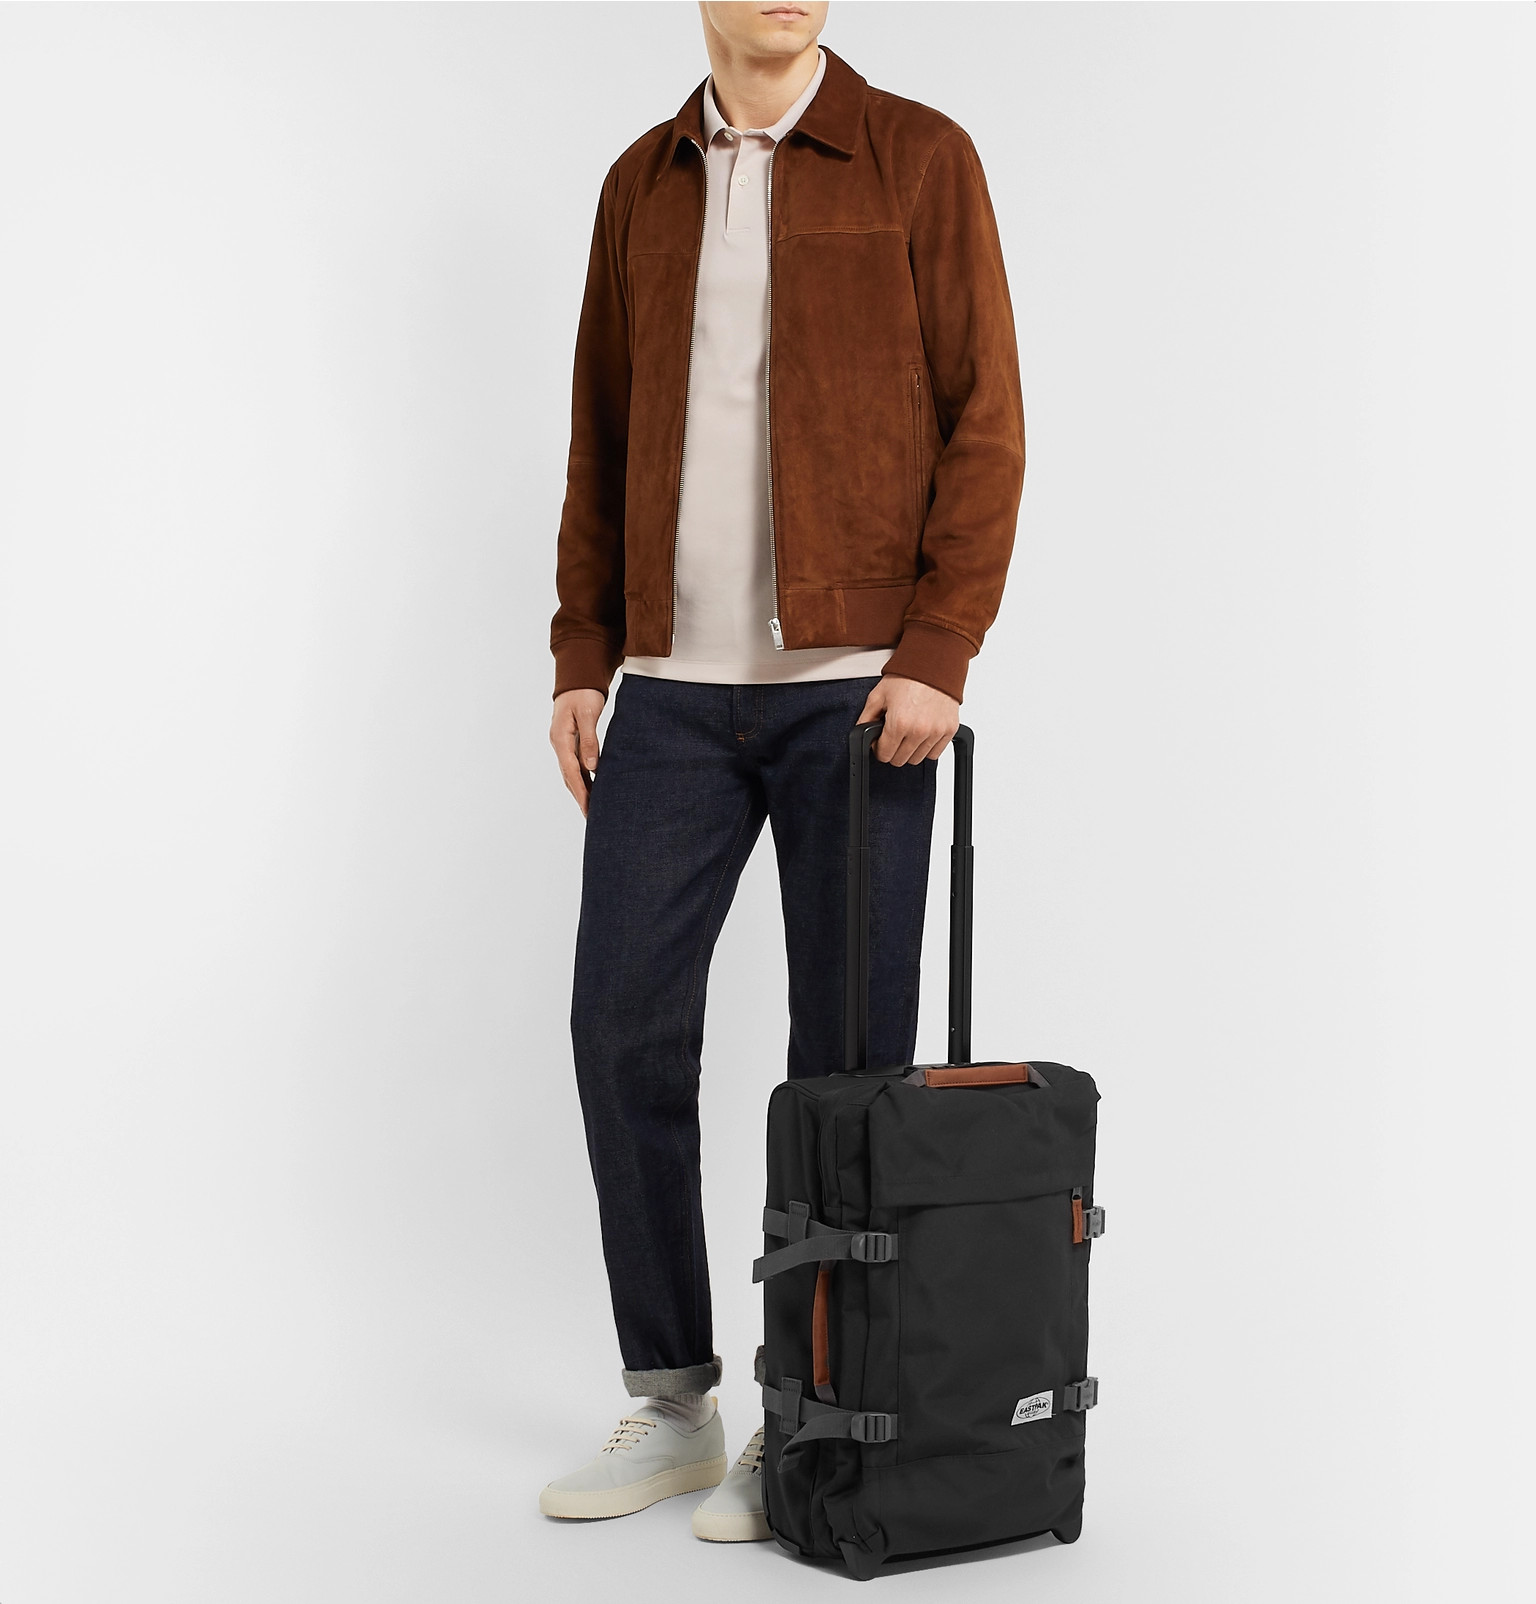 Eastpak Tranverz S Eastpak Tranverz S 51cm Leather Trimmed Canvas Suitcase